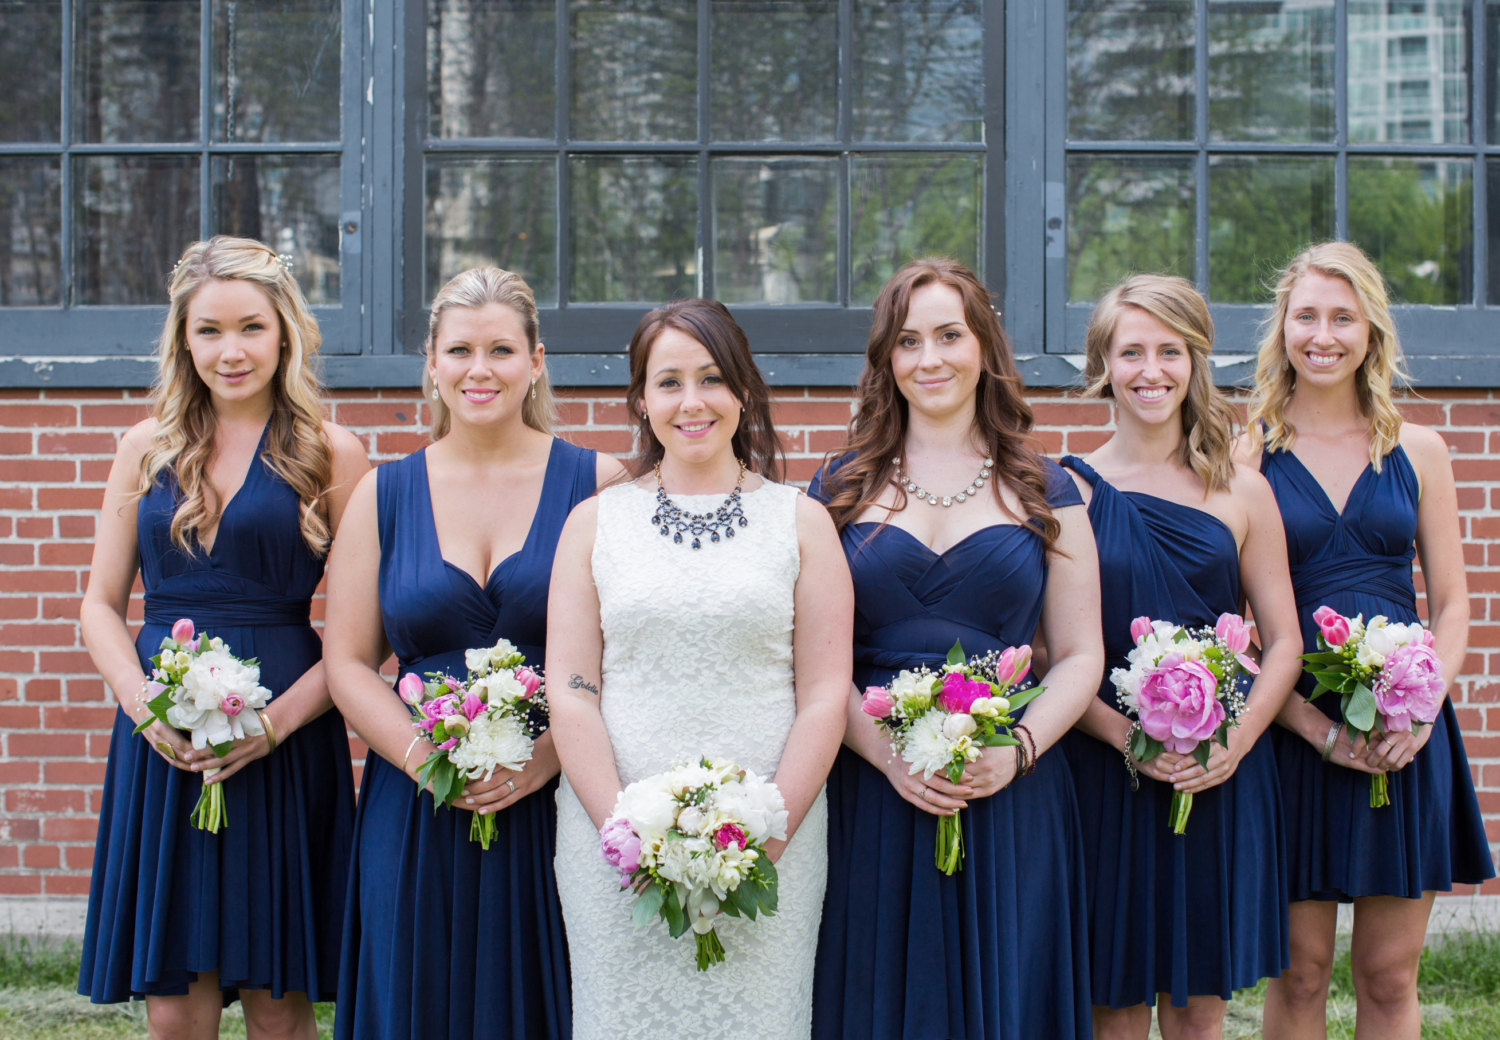 blue convertible bridesmaid dress | via http://emmalinebride.com/bridesmaids/bridesmaid-dress-worn-different-ways/